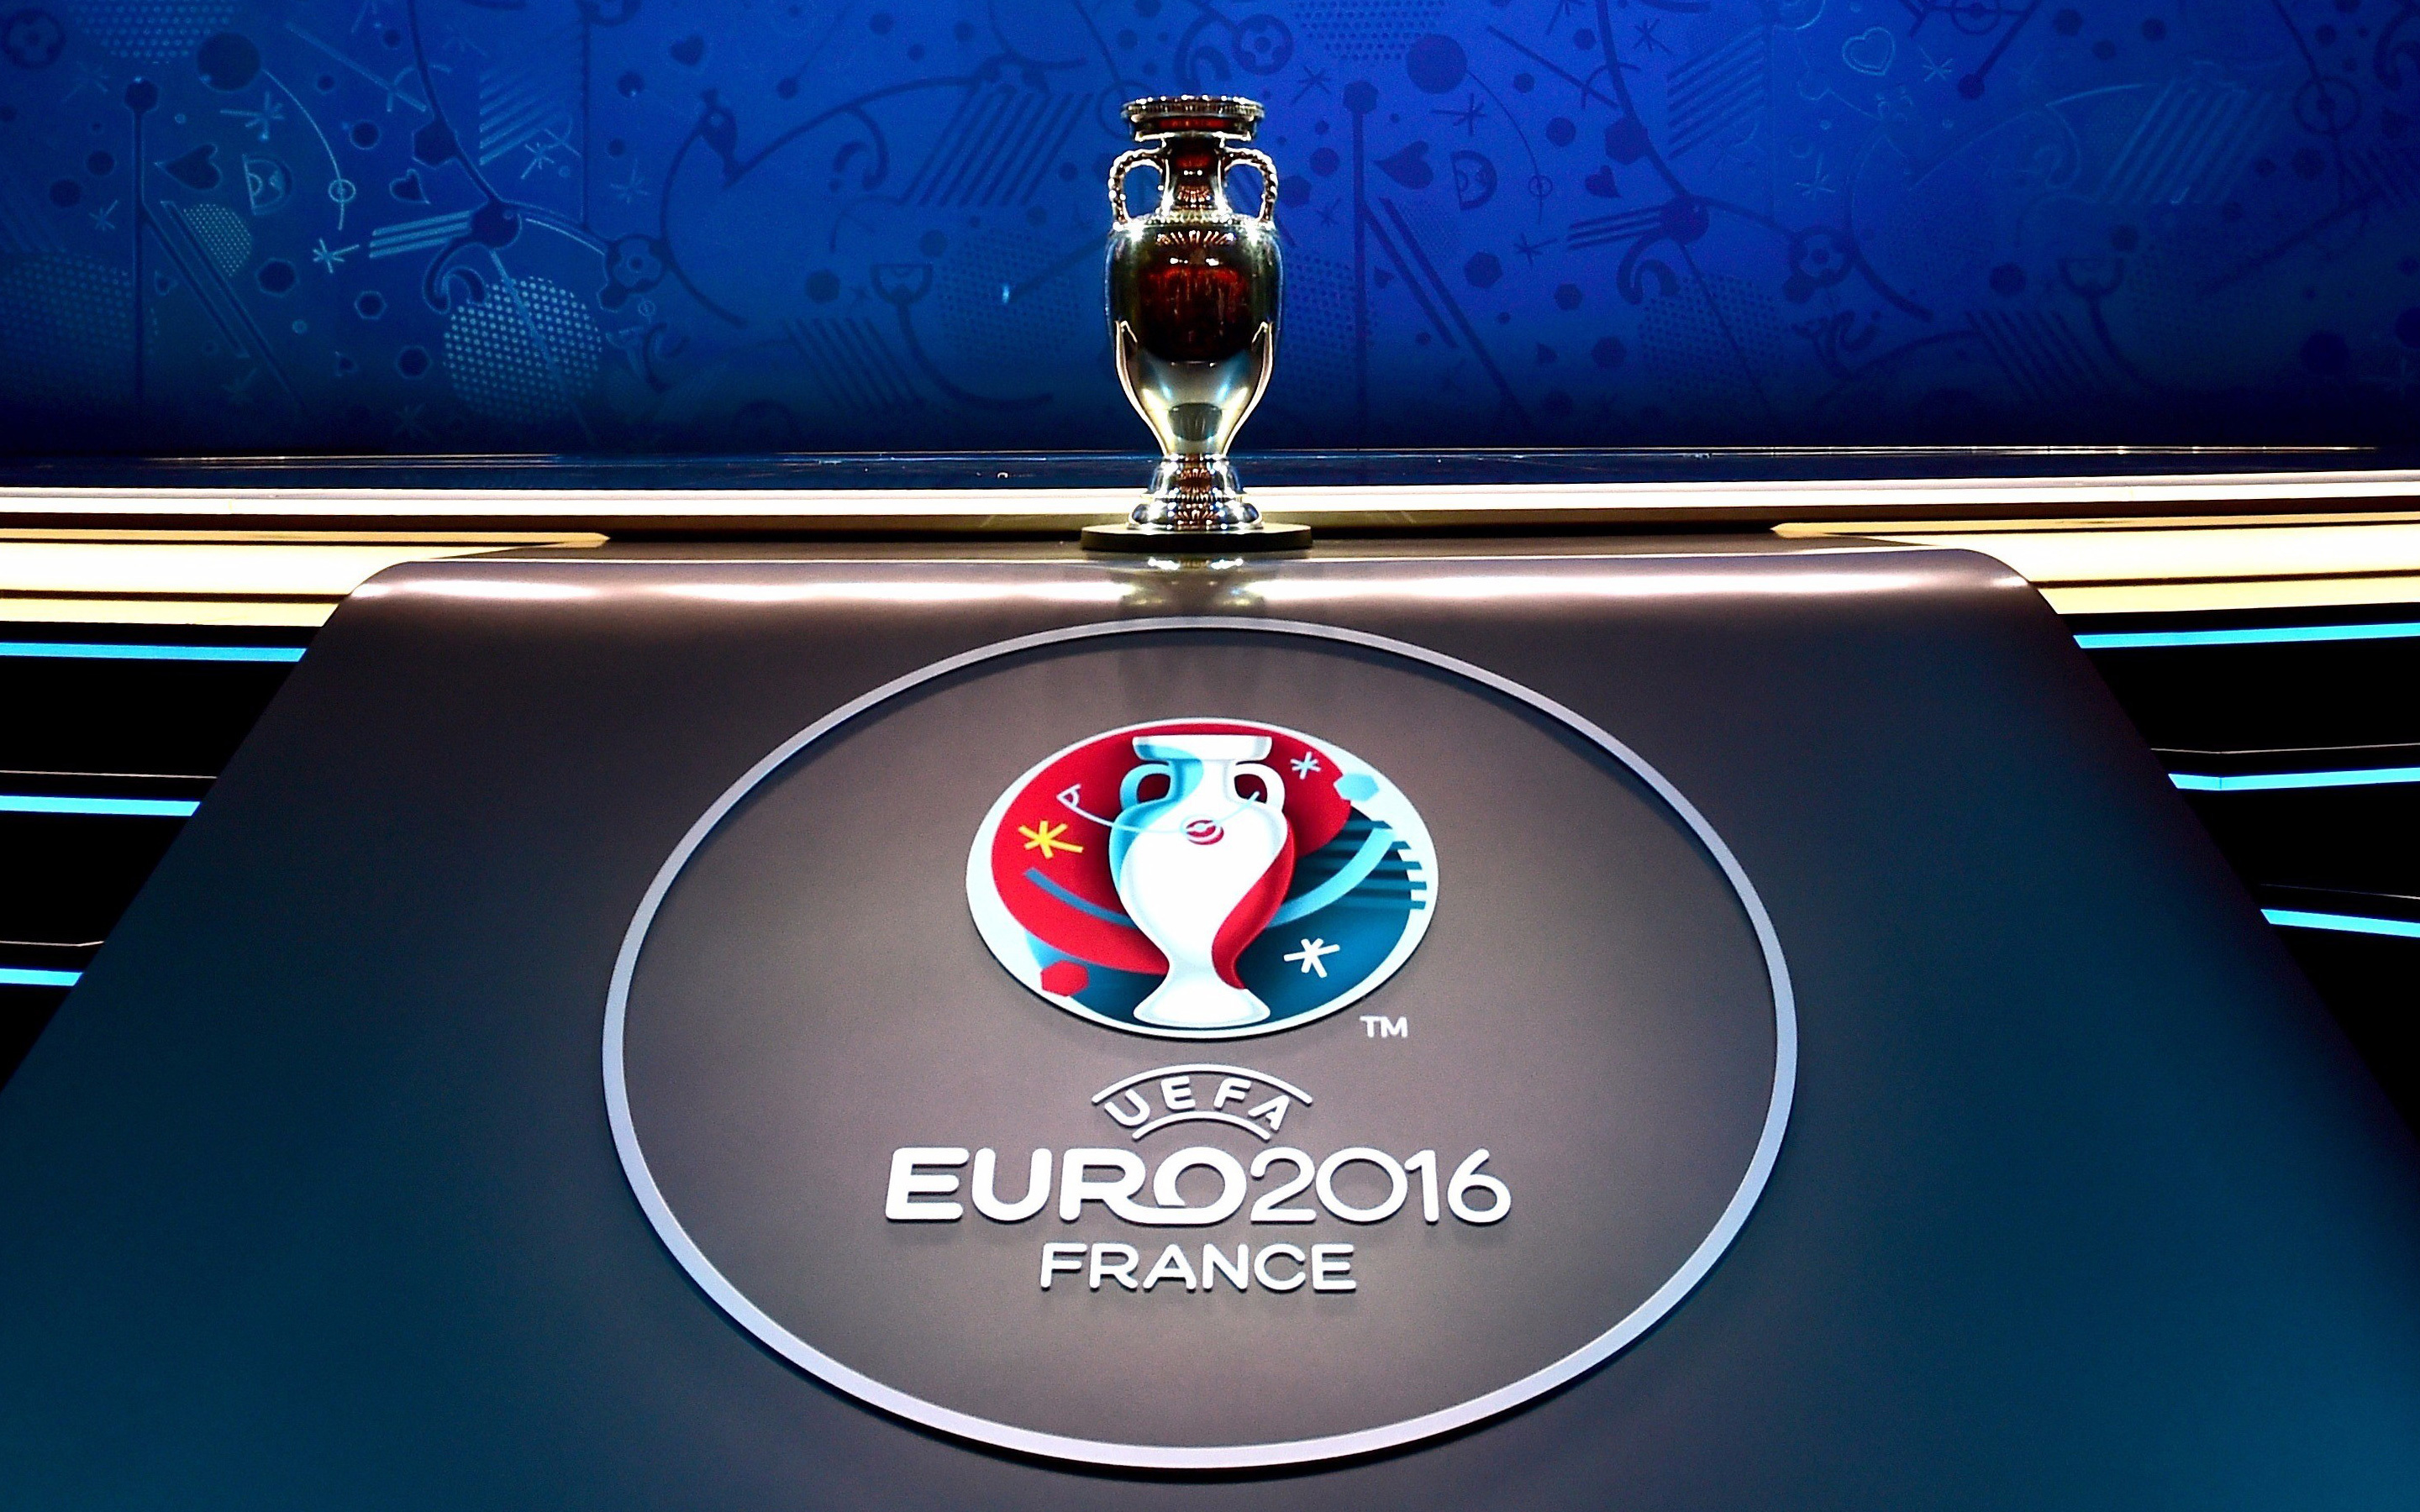 Euro 2016 High Definition Wallpapers